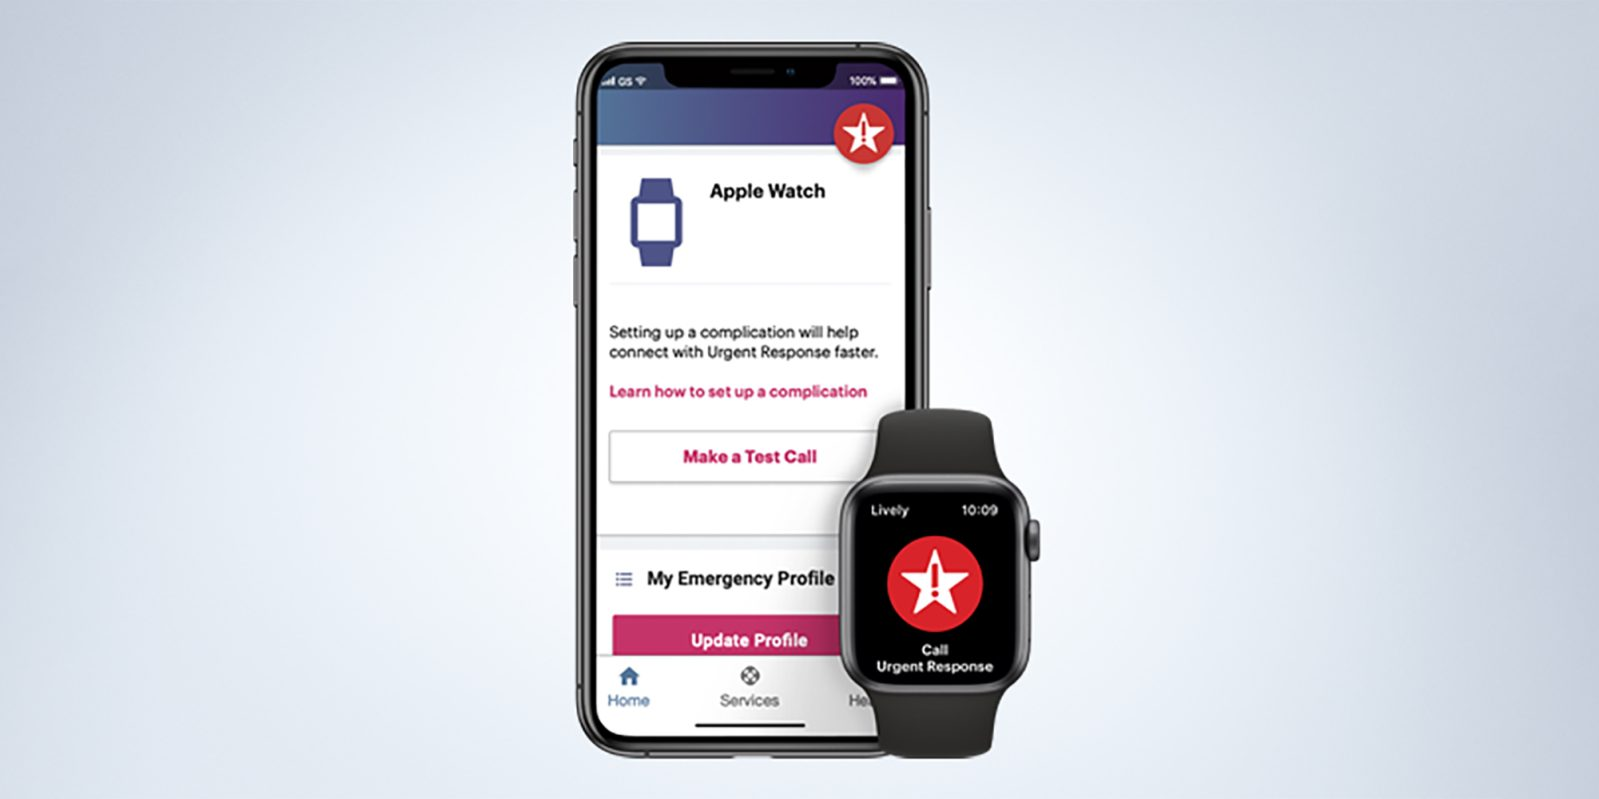 Best Buy using Apple Watch as basis for new 'Lively' health and safety service